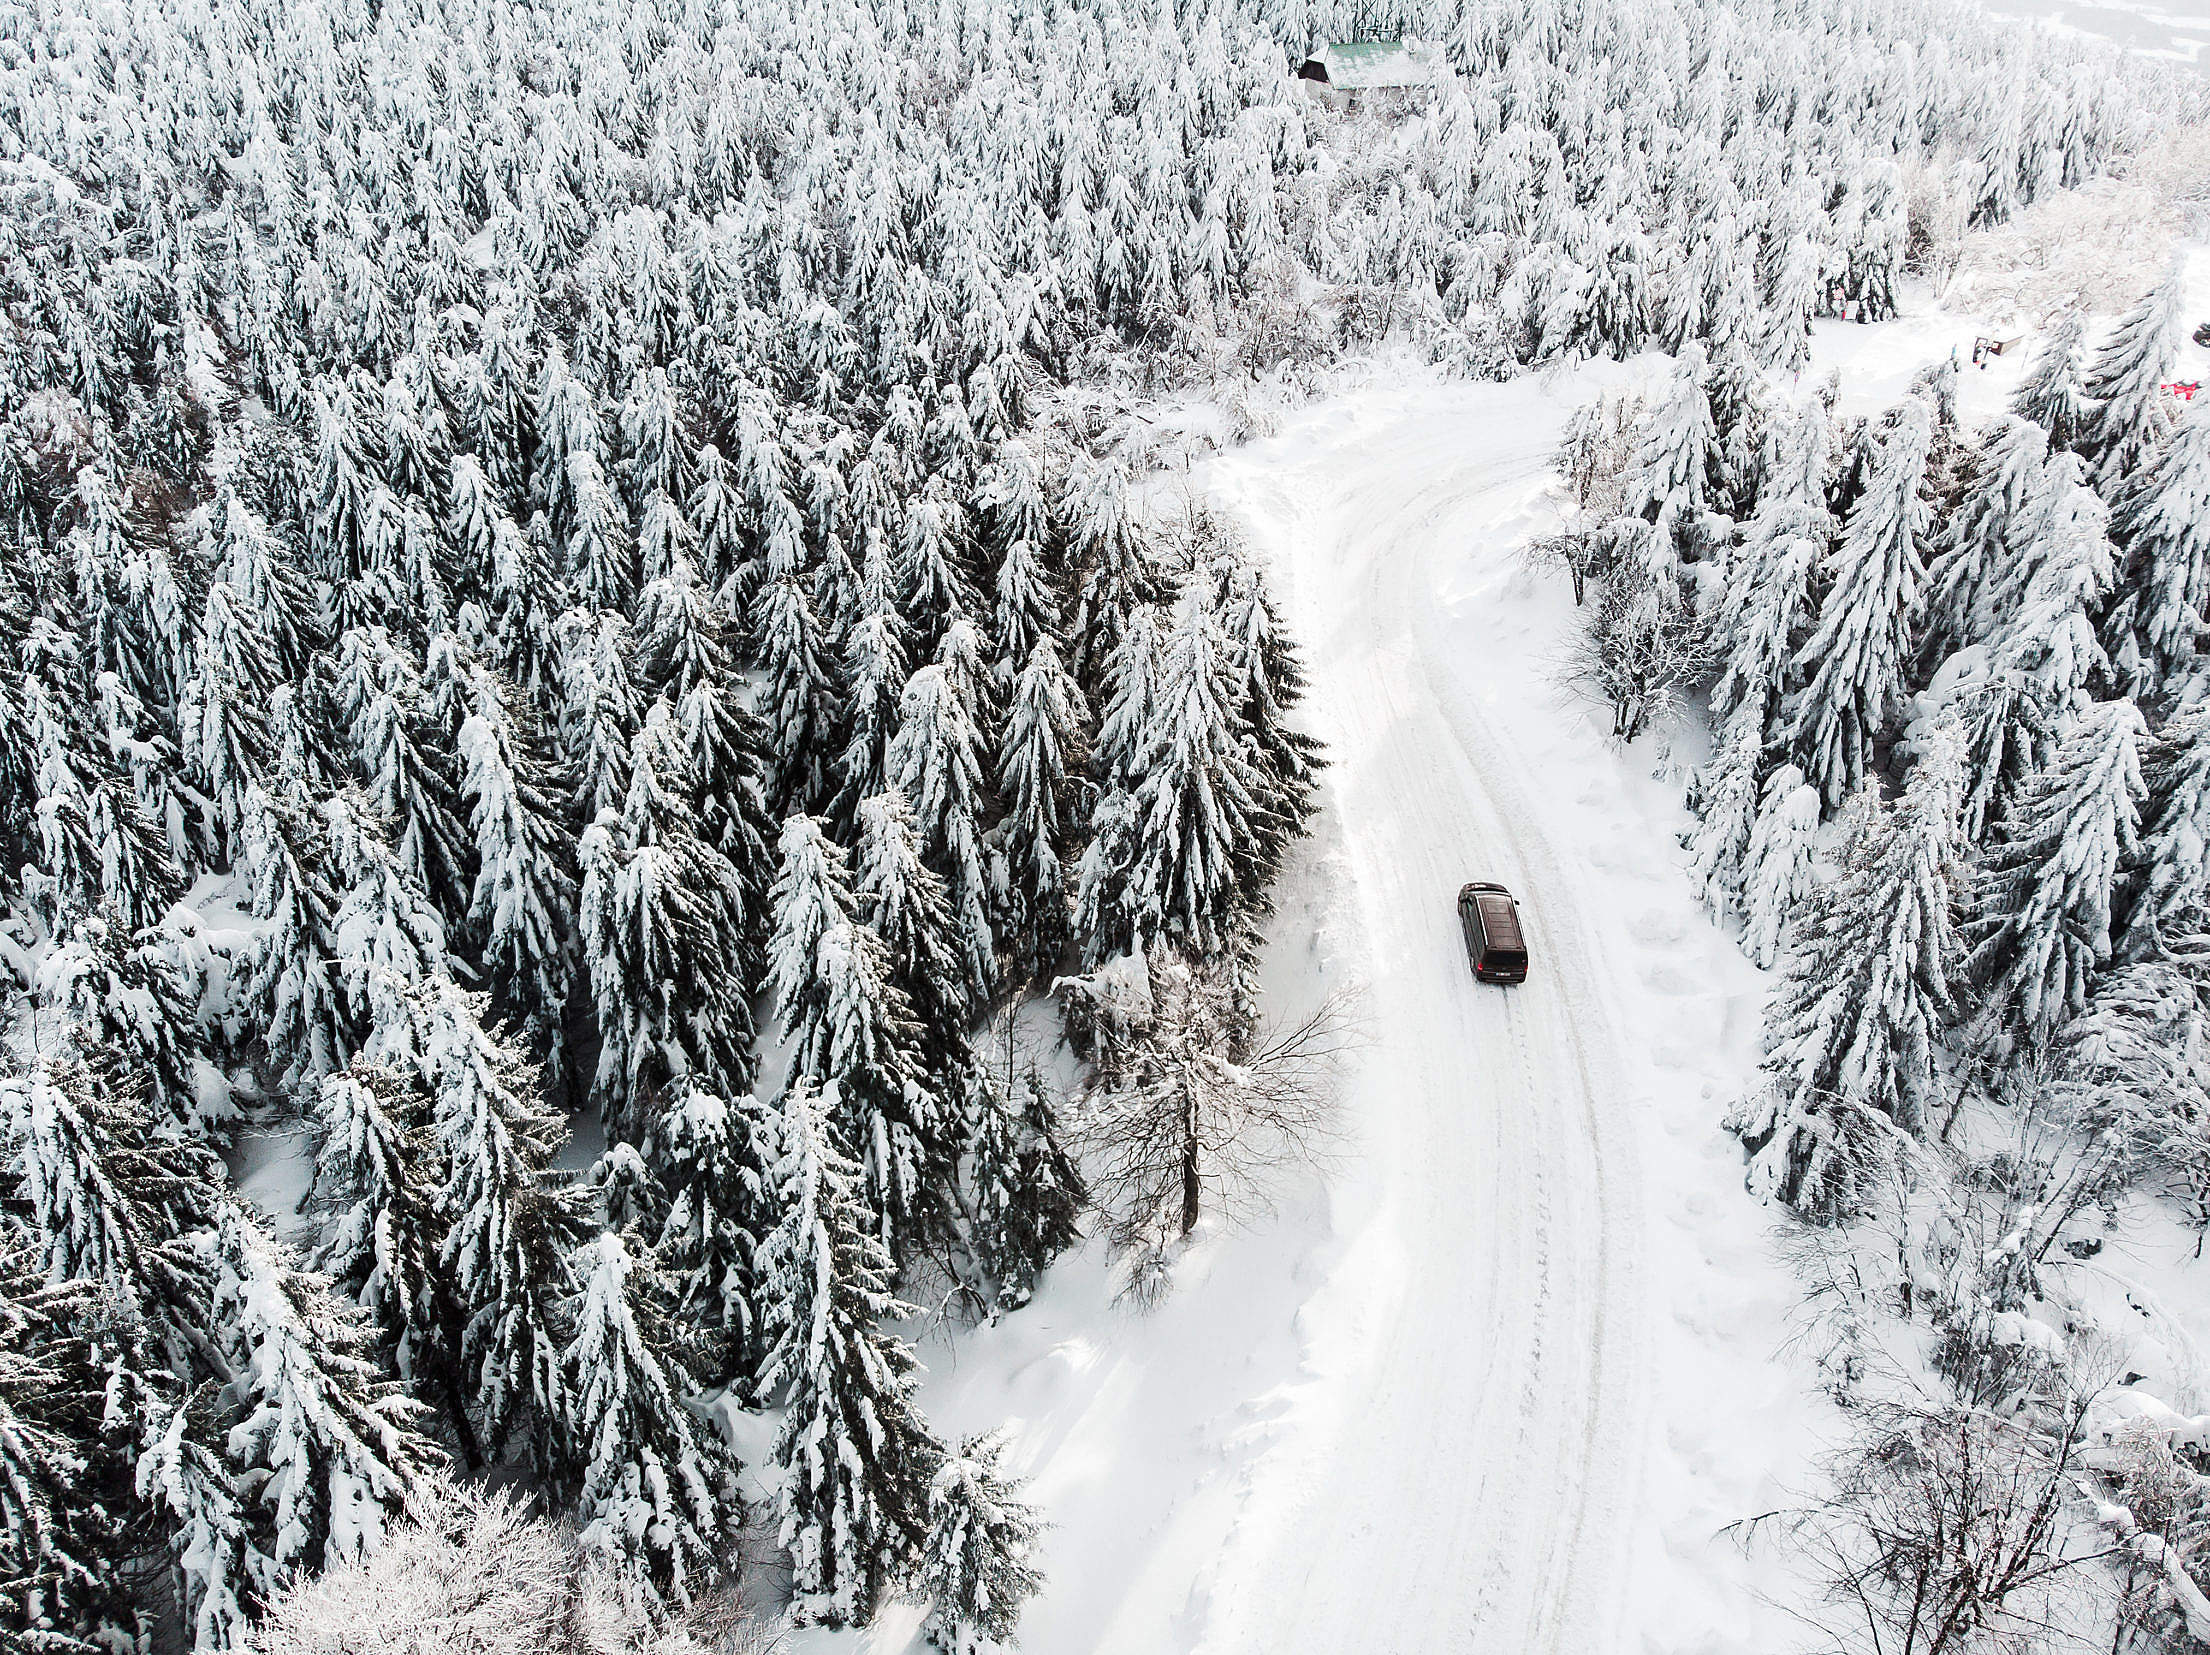 Car Driving on a Snowy Road in The Woods Free Stock Photo